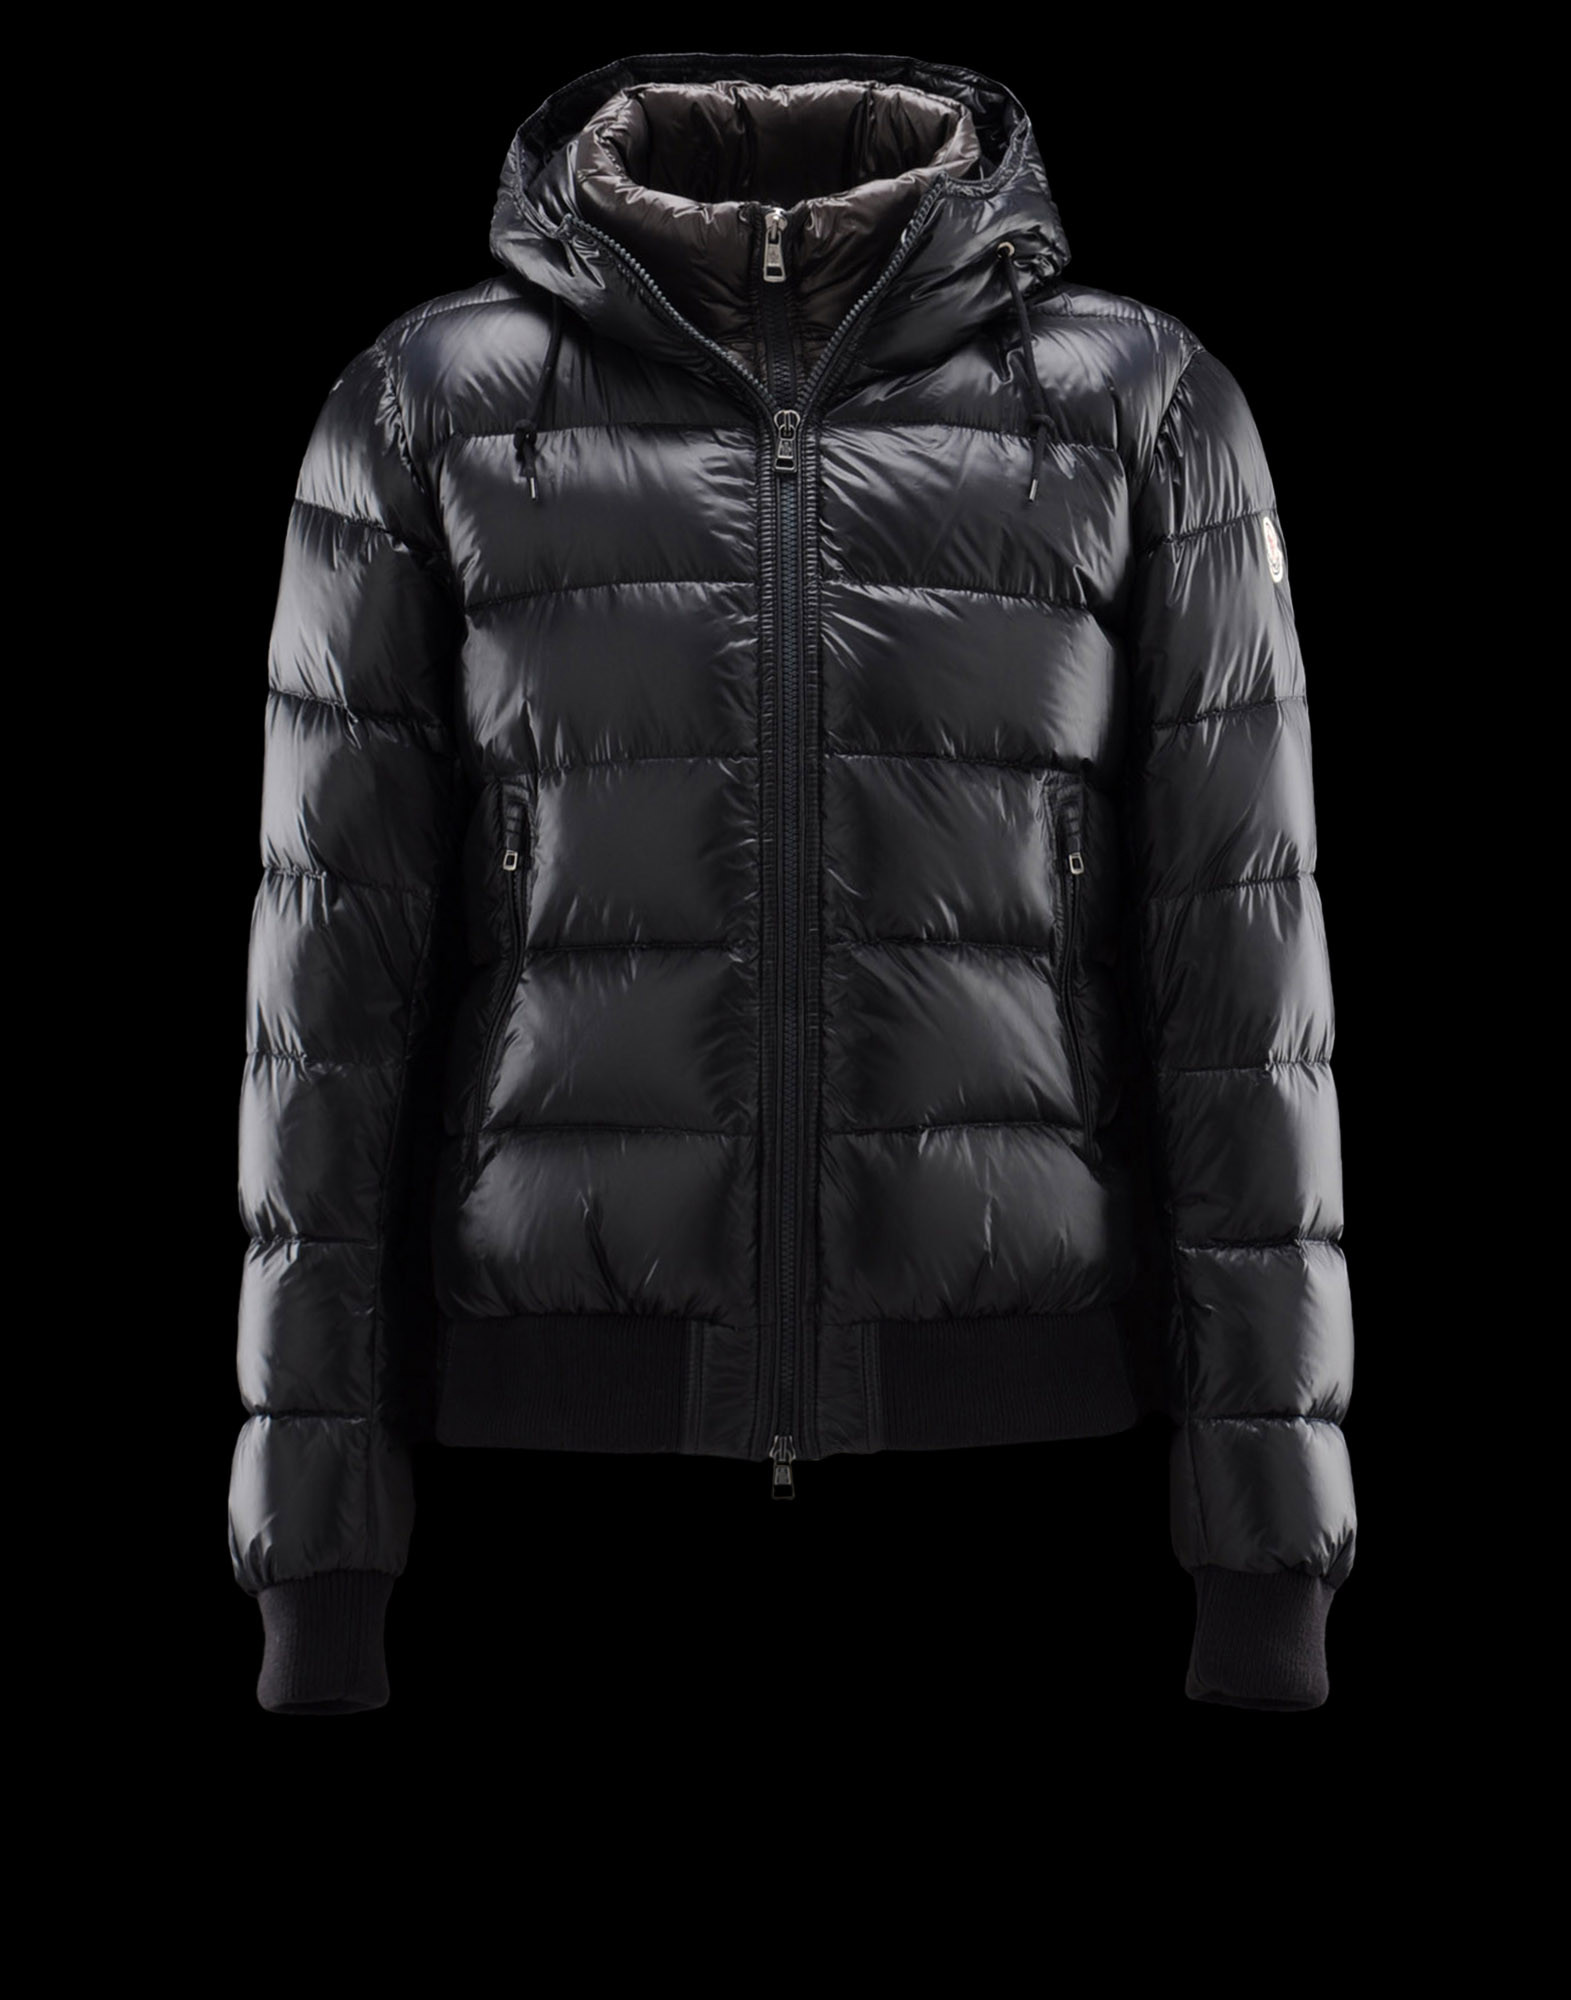 825362 Moncler Outlet Orlando Moncler Store Moncler Jacket For Women  - Online